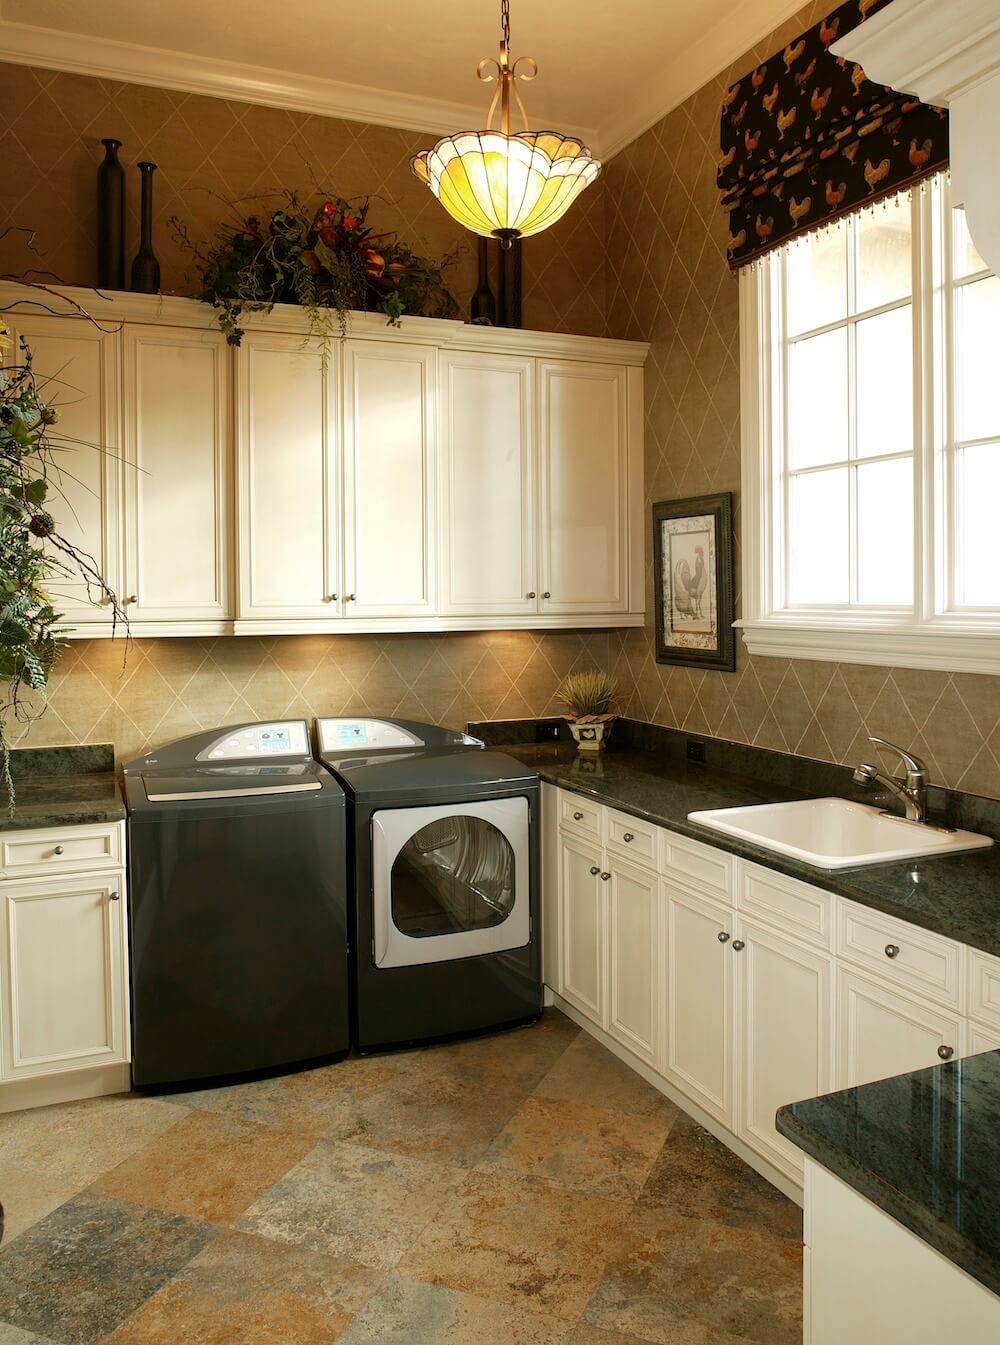 kitchen countertop popular comparing marble stones mica articles stone vs countertops two granite wars and colonial gold